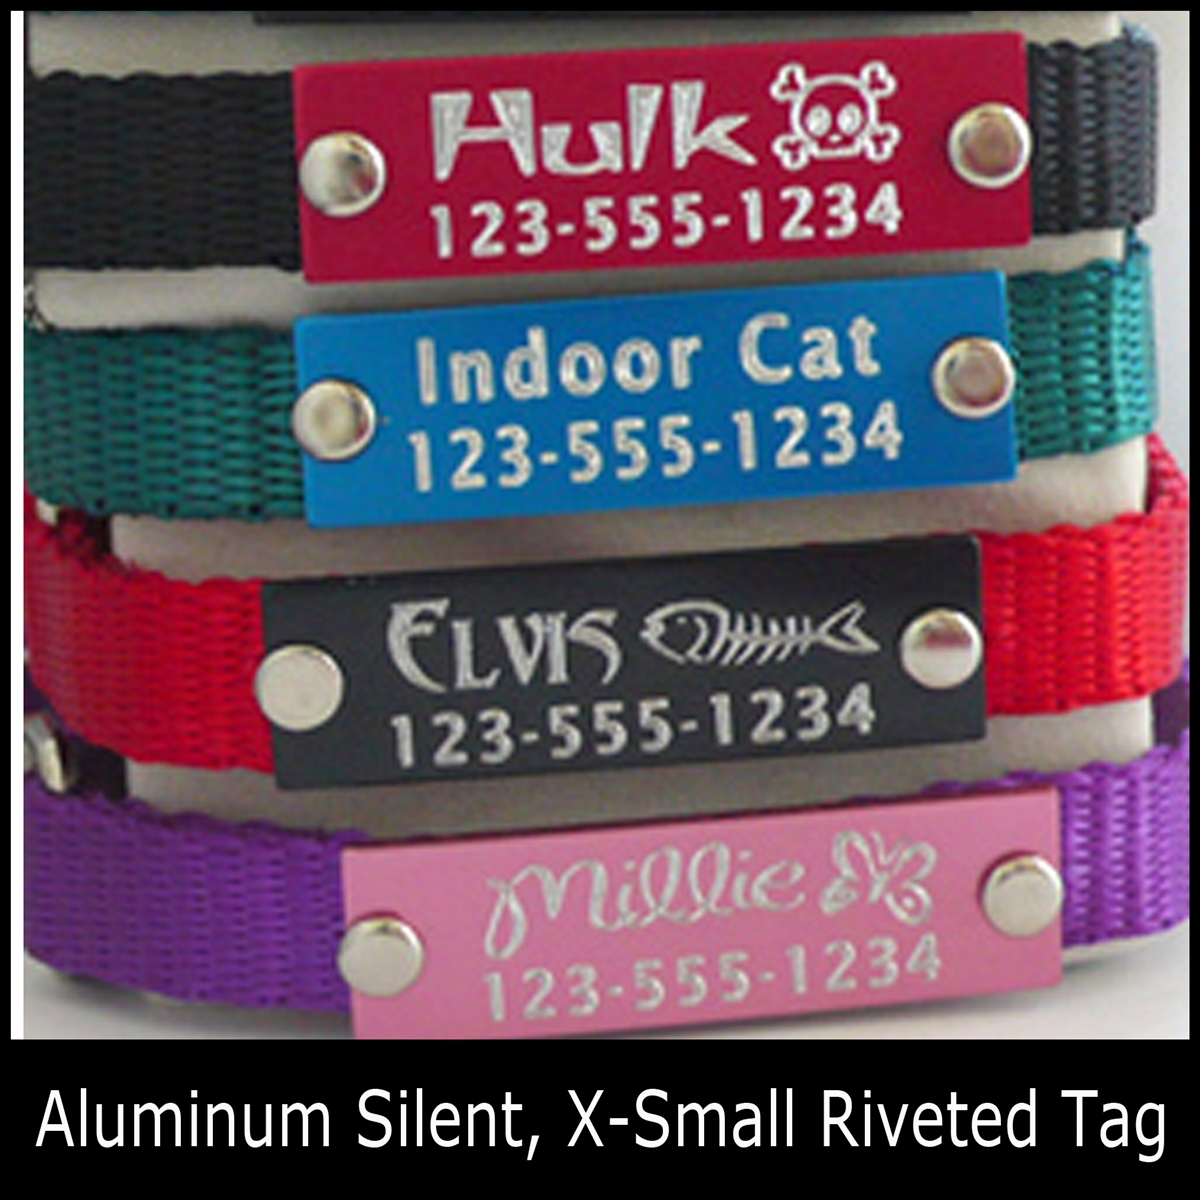 Anodized Aluminum Silent, Riveted Extra Small Pet ID Tag-Quick Order